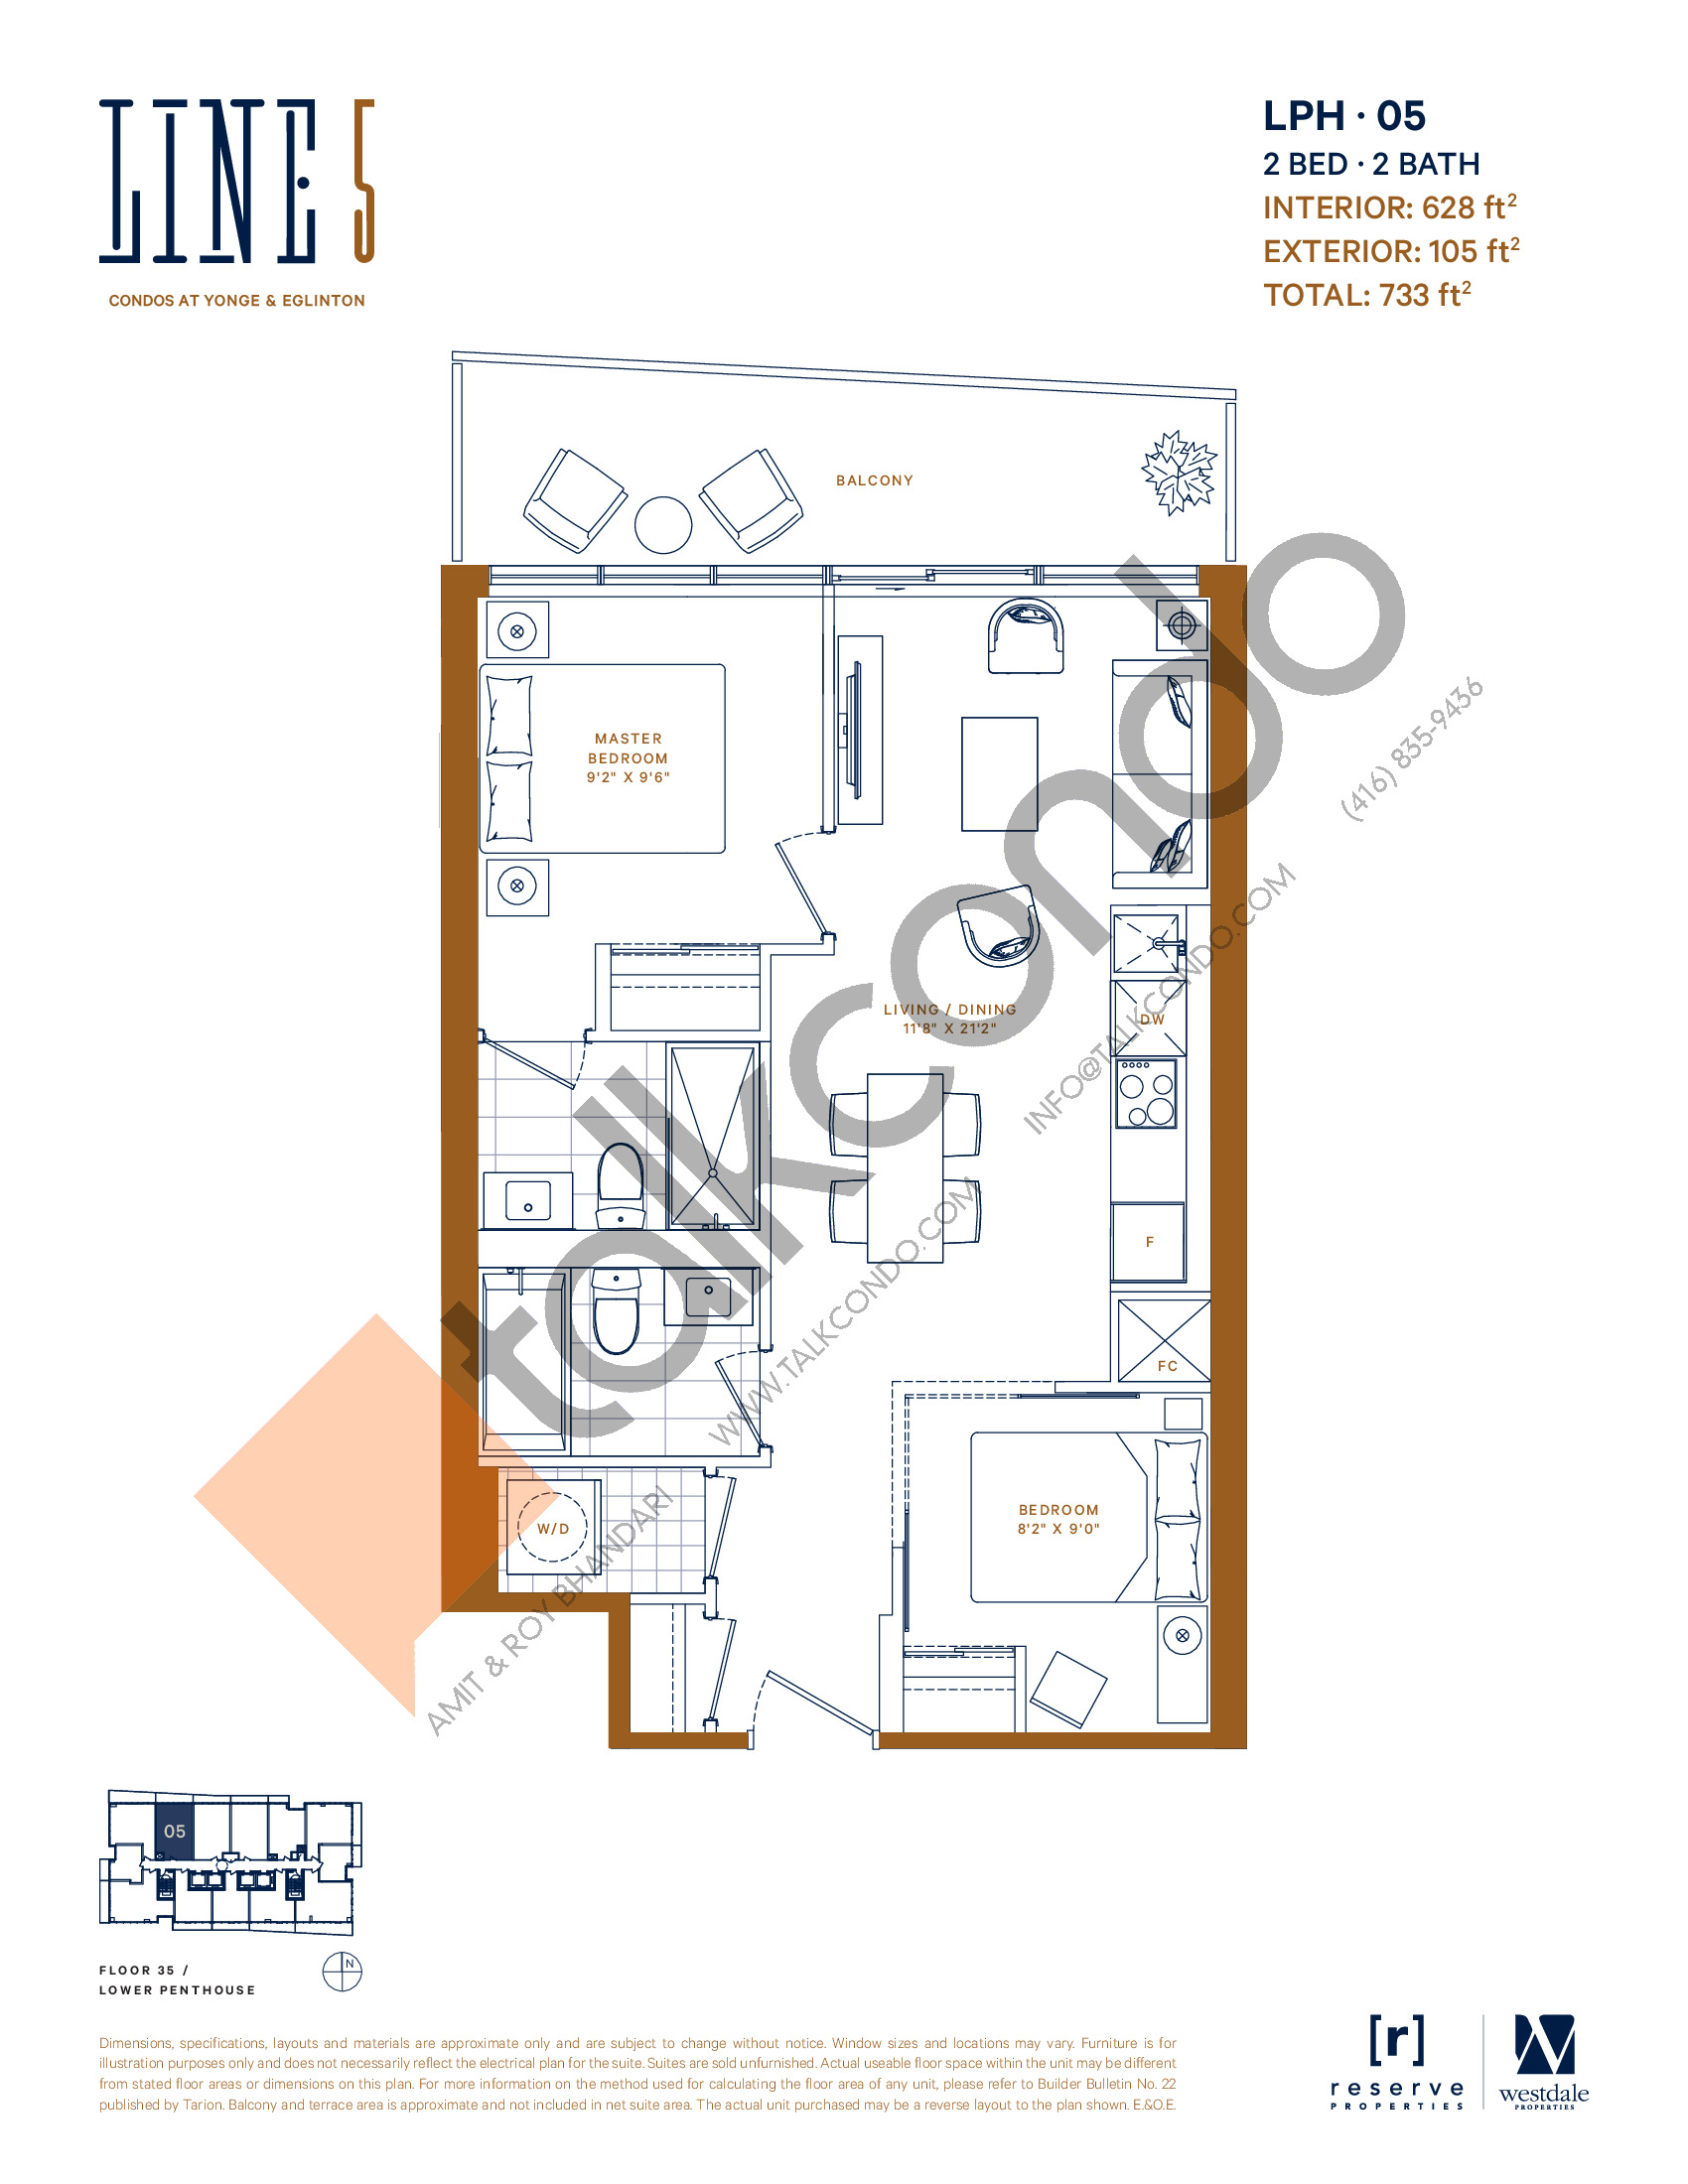 LPH-05 Floor Plan at Line 5 South Tower Condos - 628 sq.ft